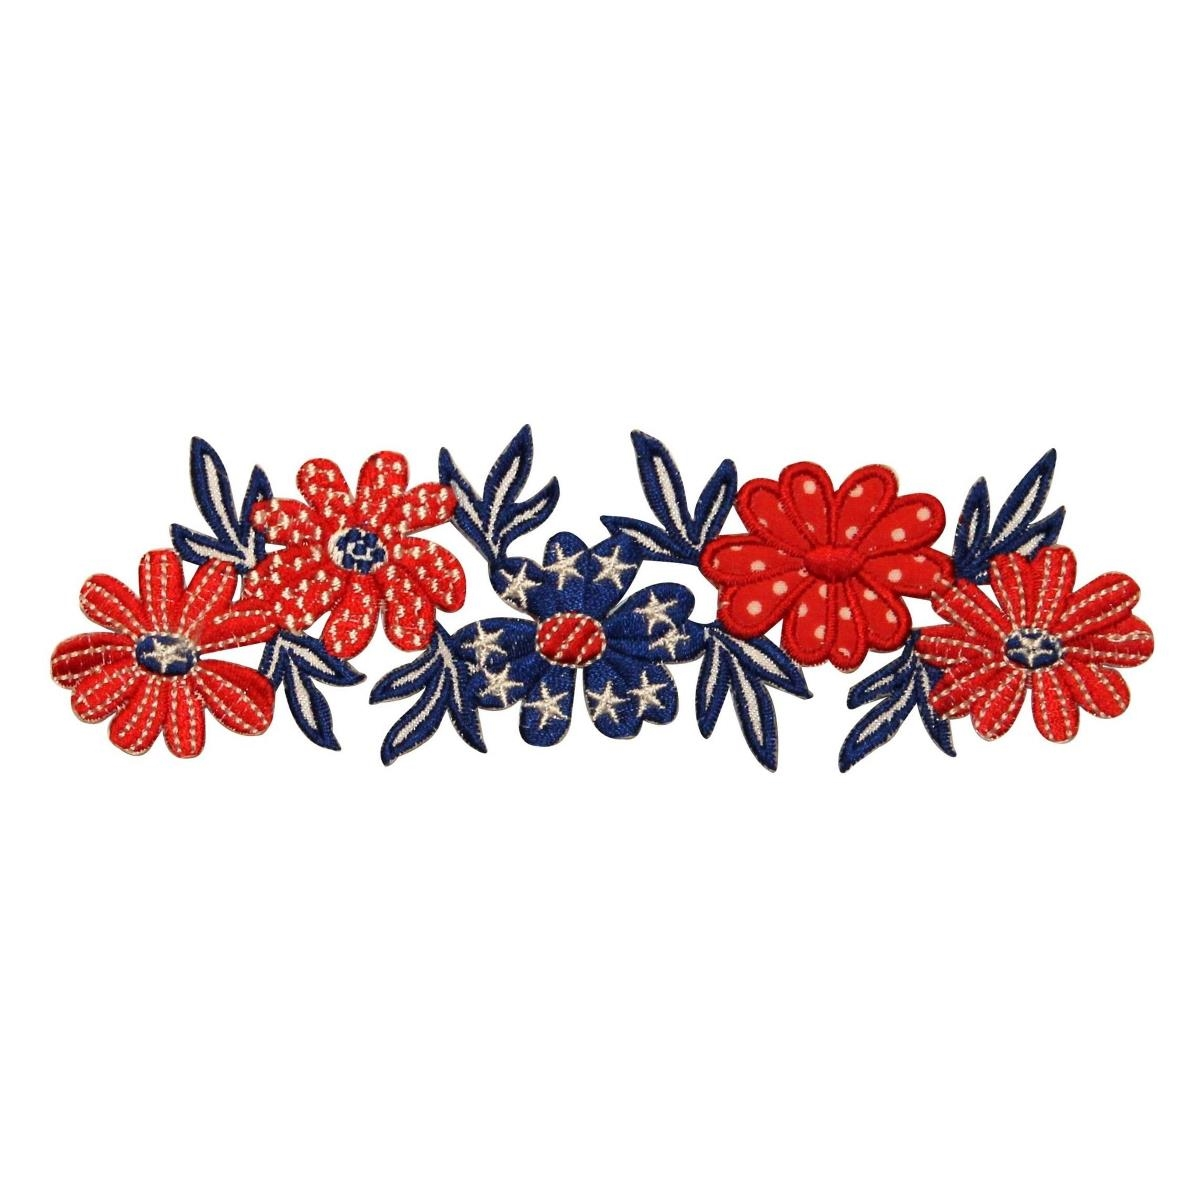 ID 1085Z American Flowers Band Patch Patriotic Craft Embroidered IronOn Applique